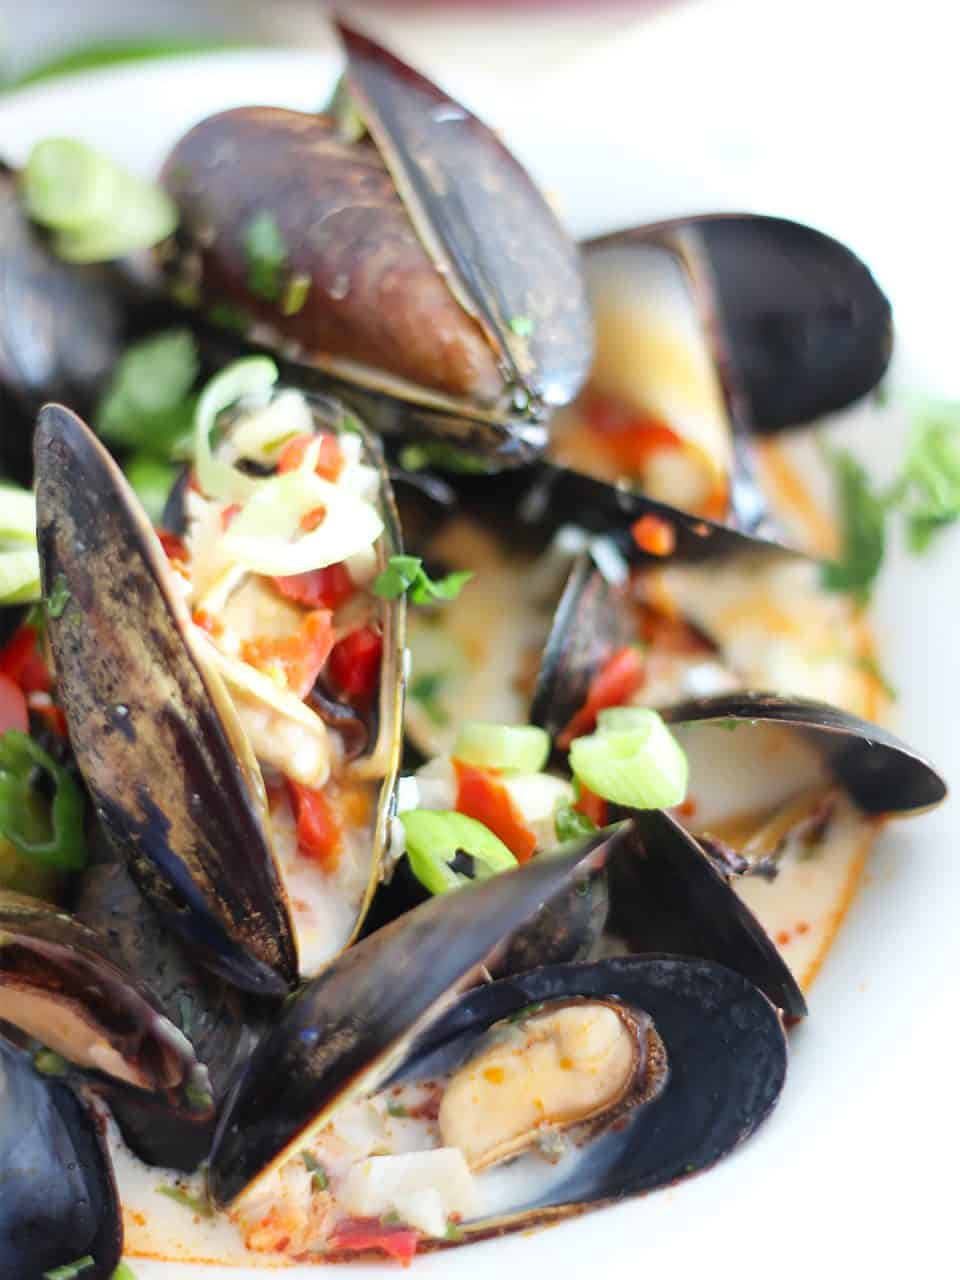 Close up of the cooked mussels ready to serve.